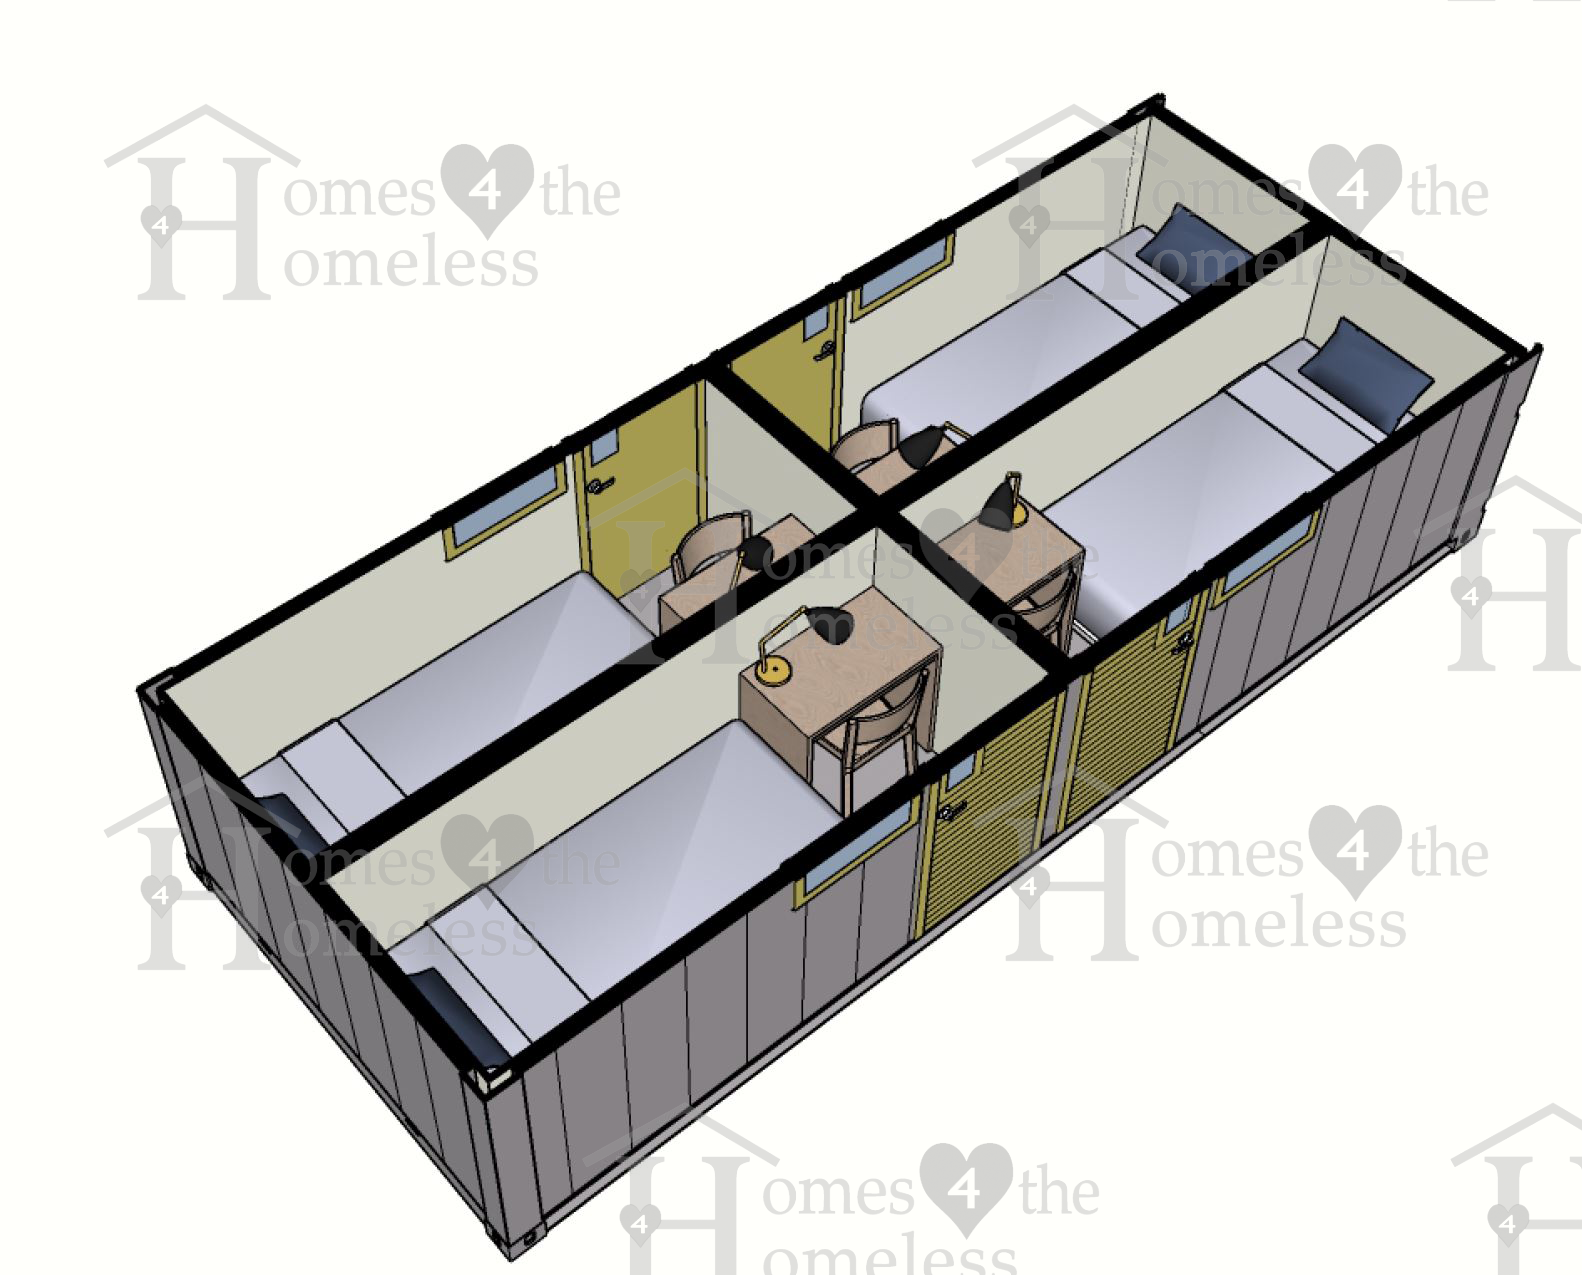 Type 1 four bedroom tiny home 4 homeless (1)